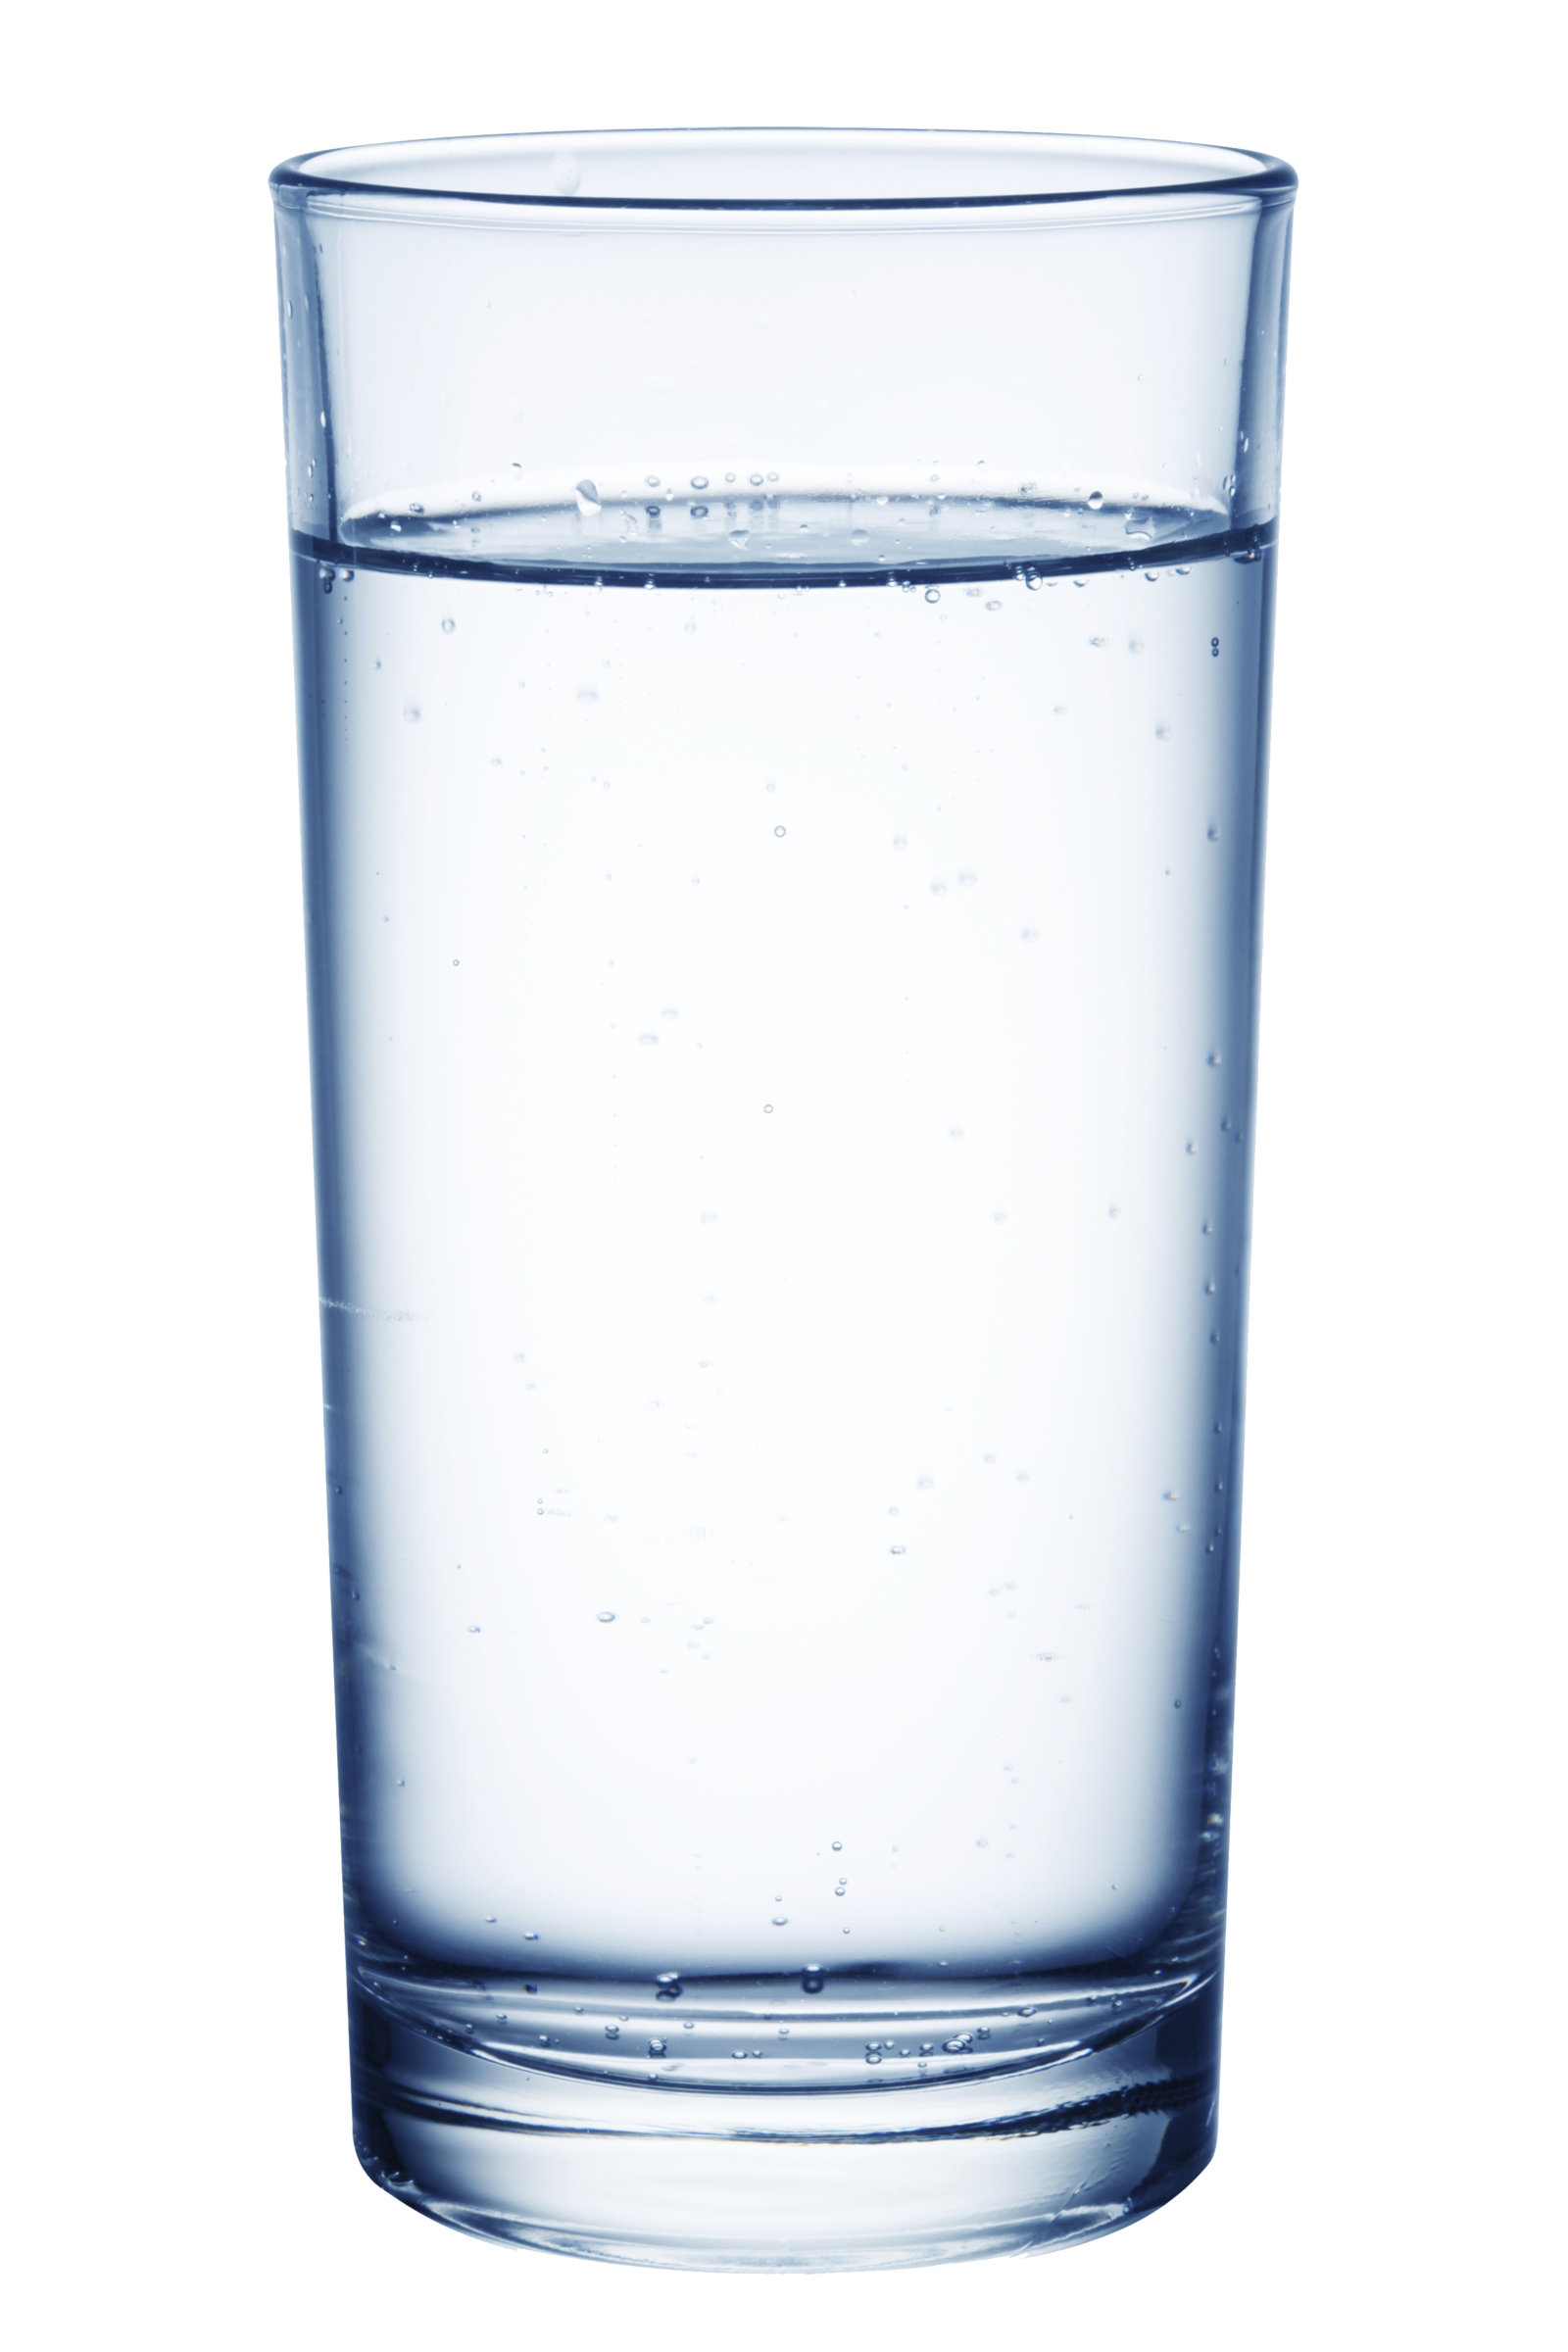 Cup of water png. Glass images free download